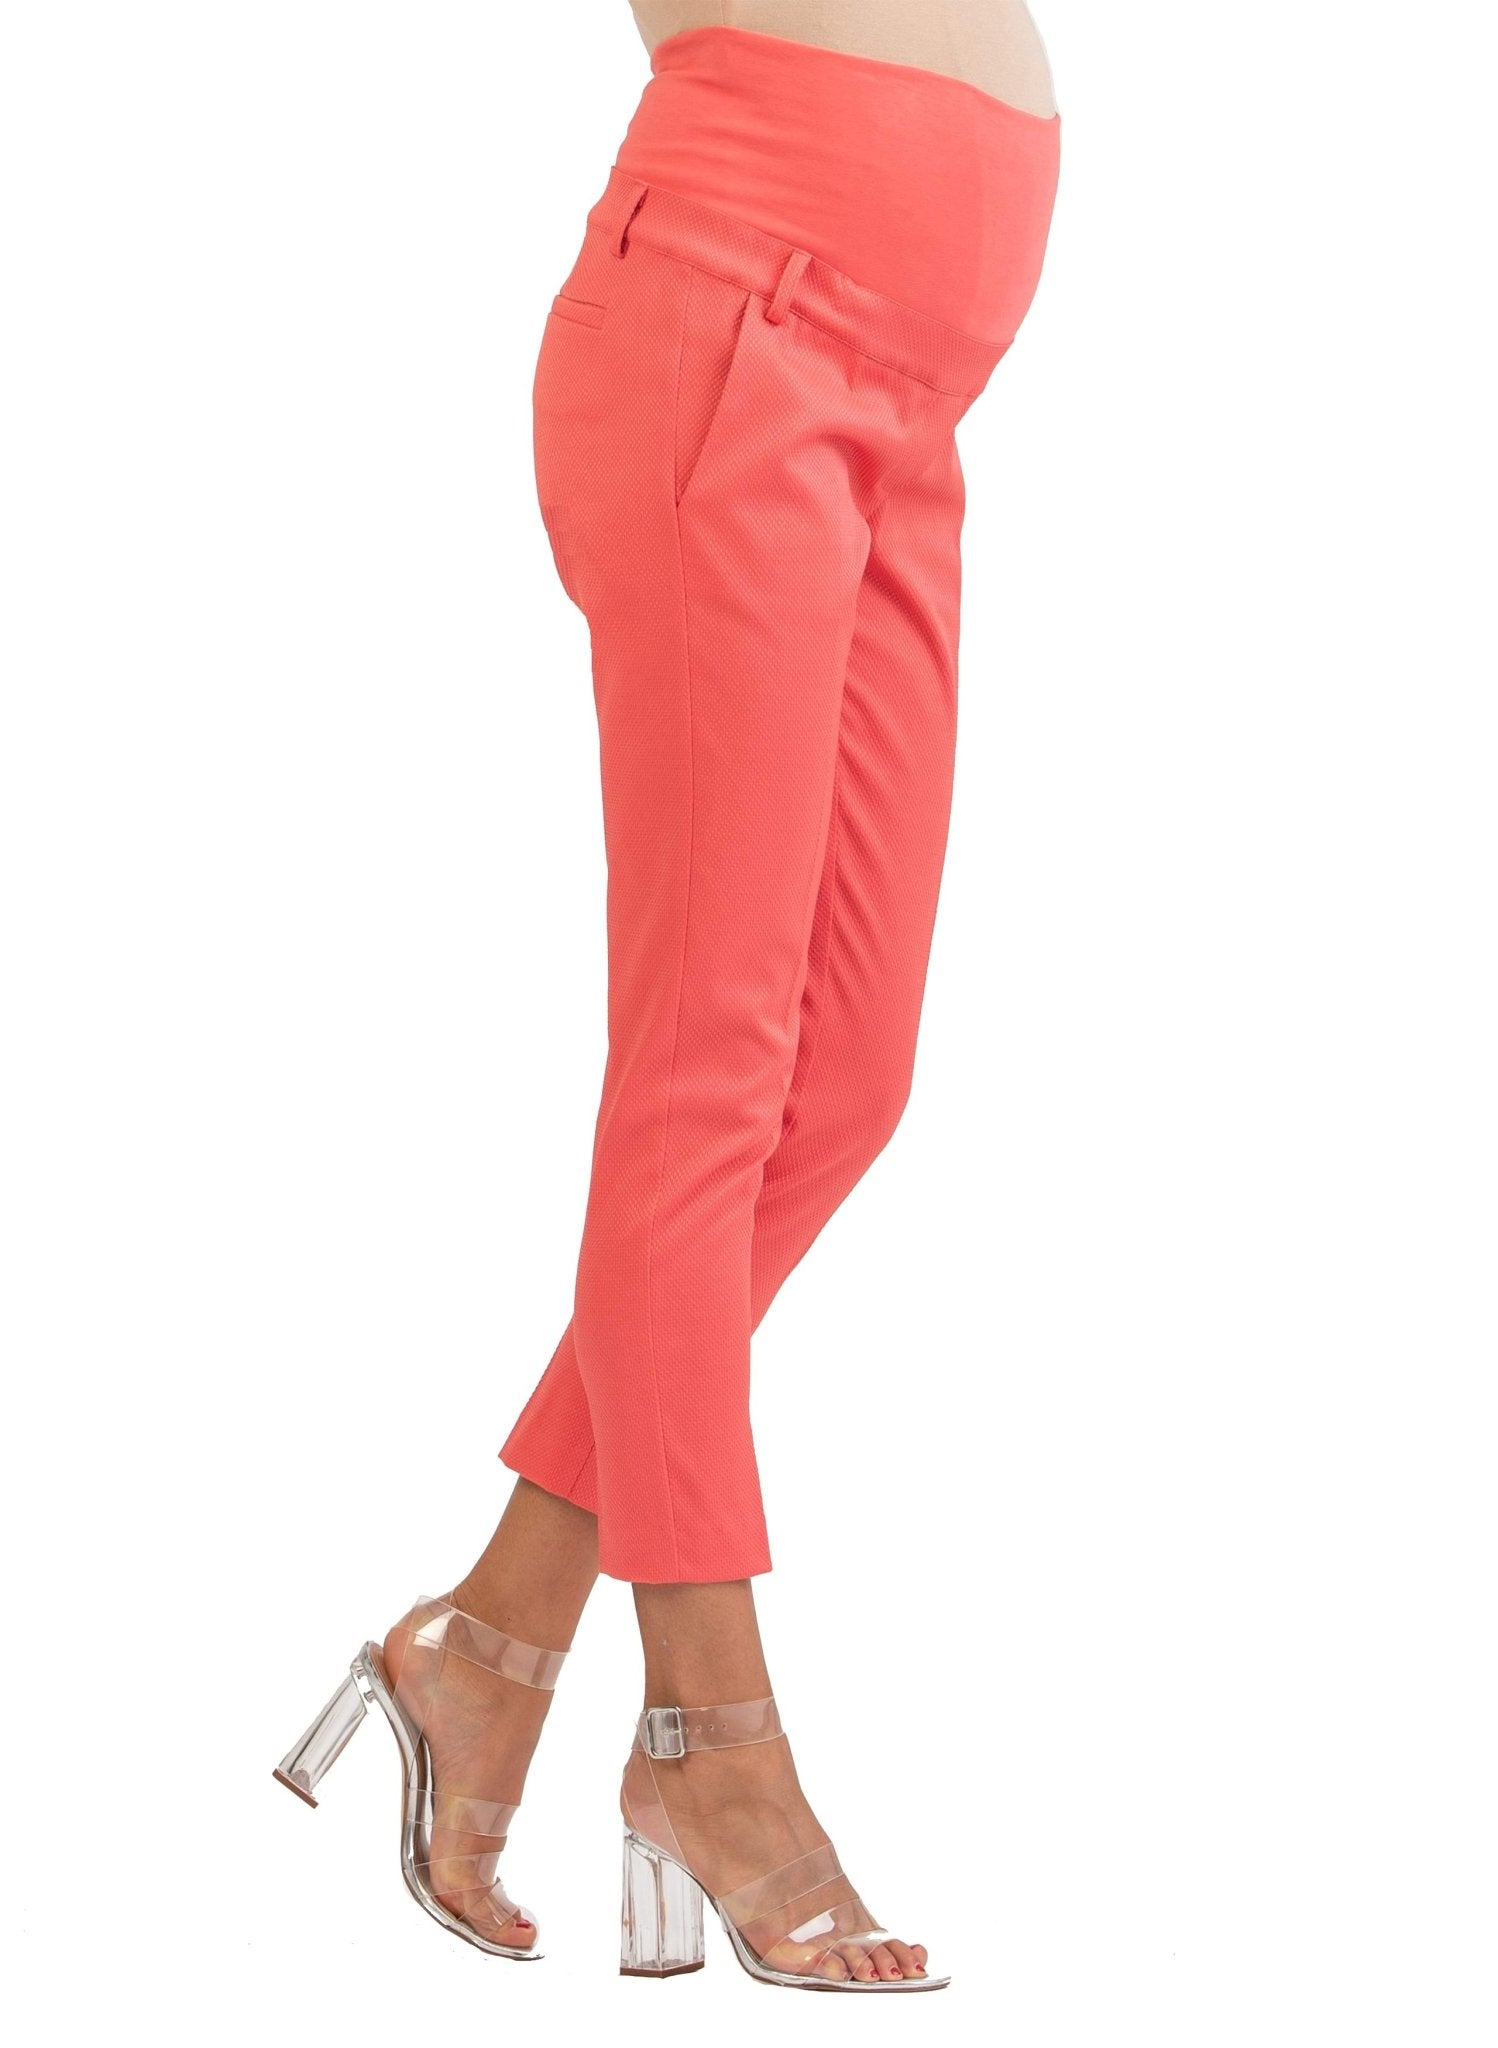 Tailored Maternity Trousers in Pique - Coral - Mums and Bumps